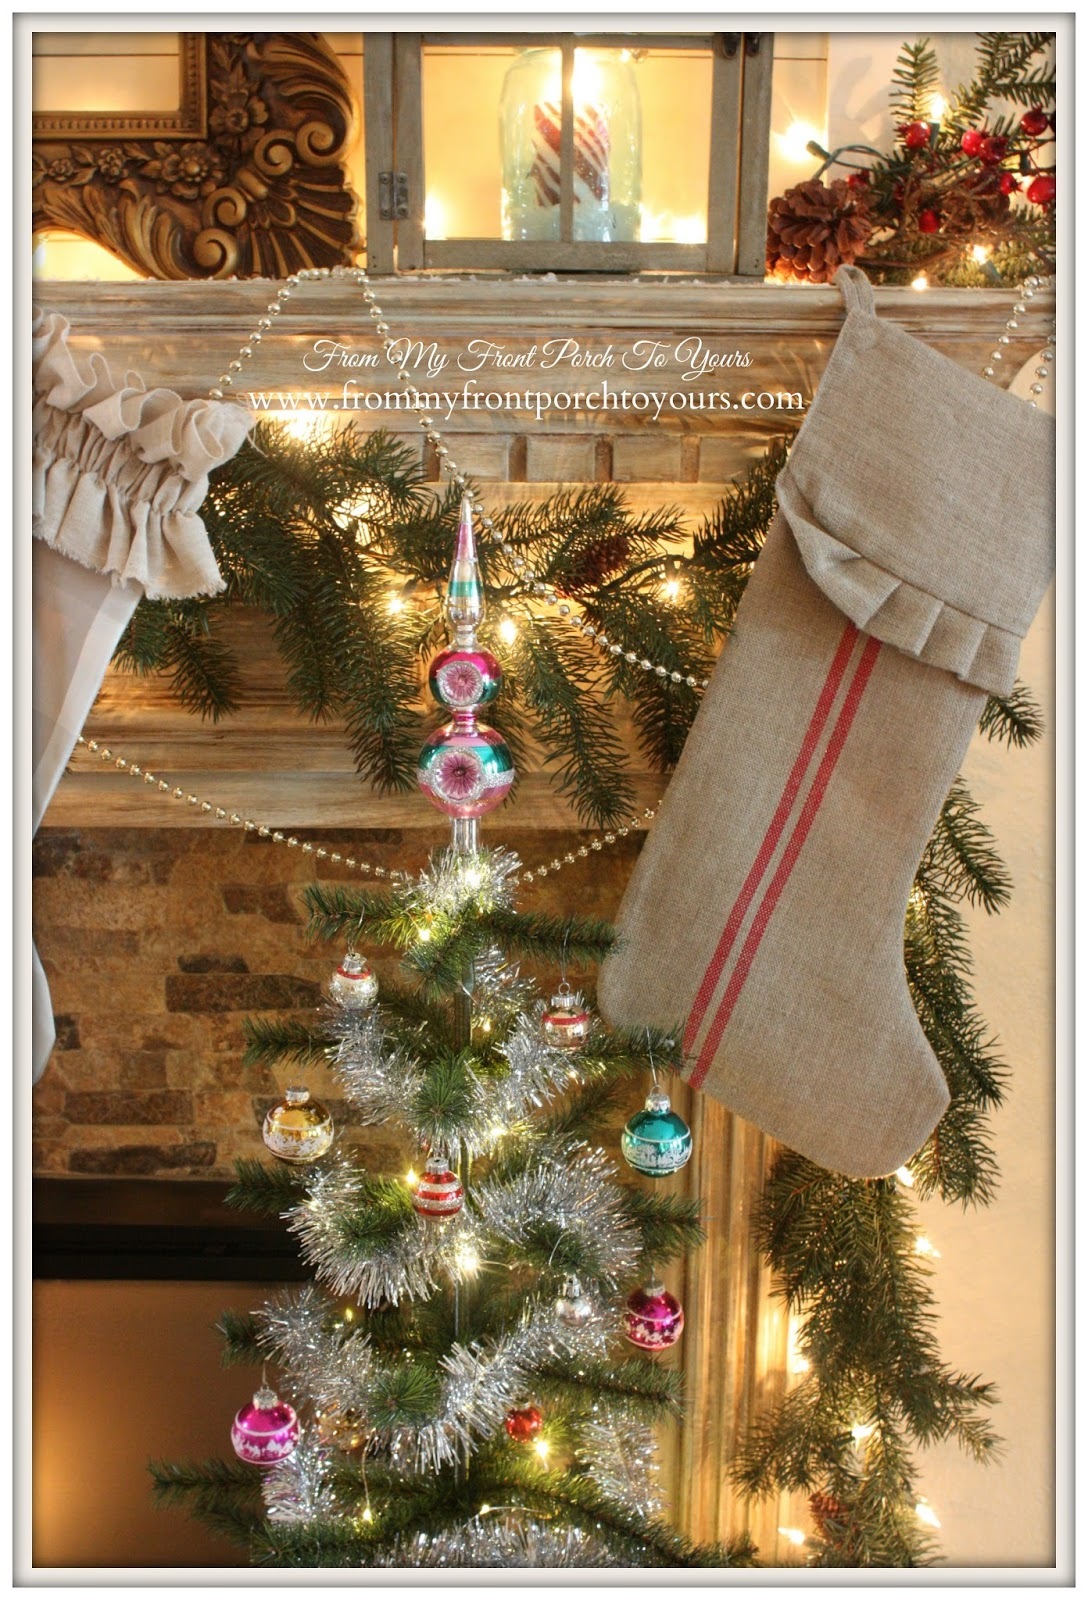 French Farmhouse Vintage Christmas Mantel- Vintage Ornaments-From My Front Porch To Yours